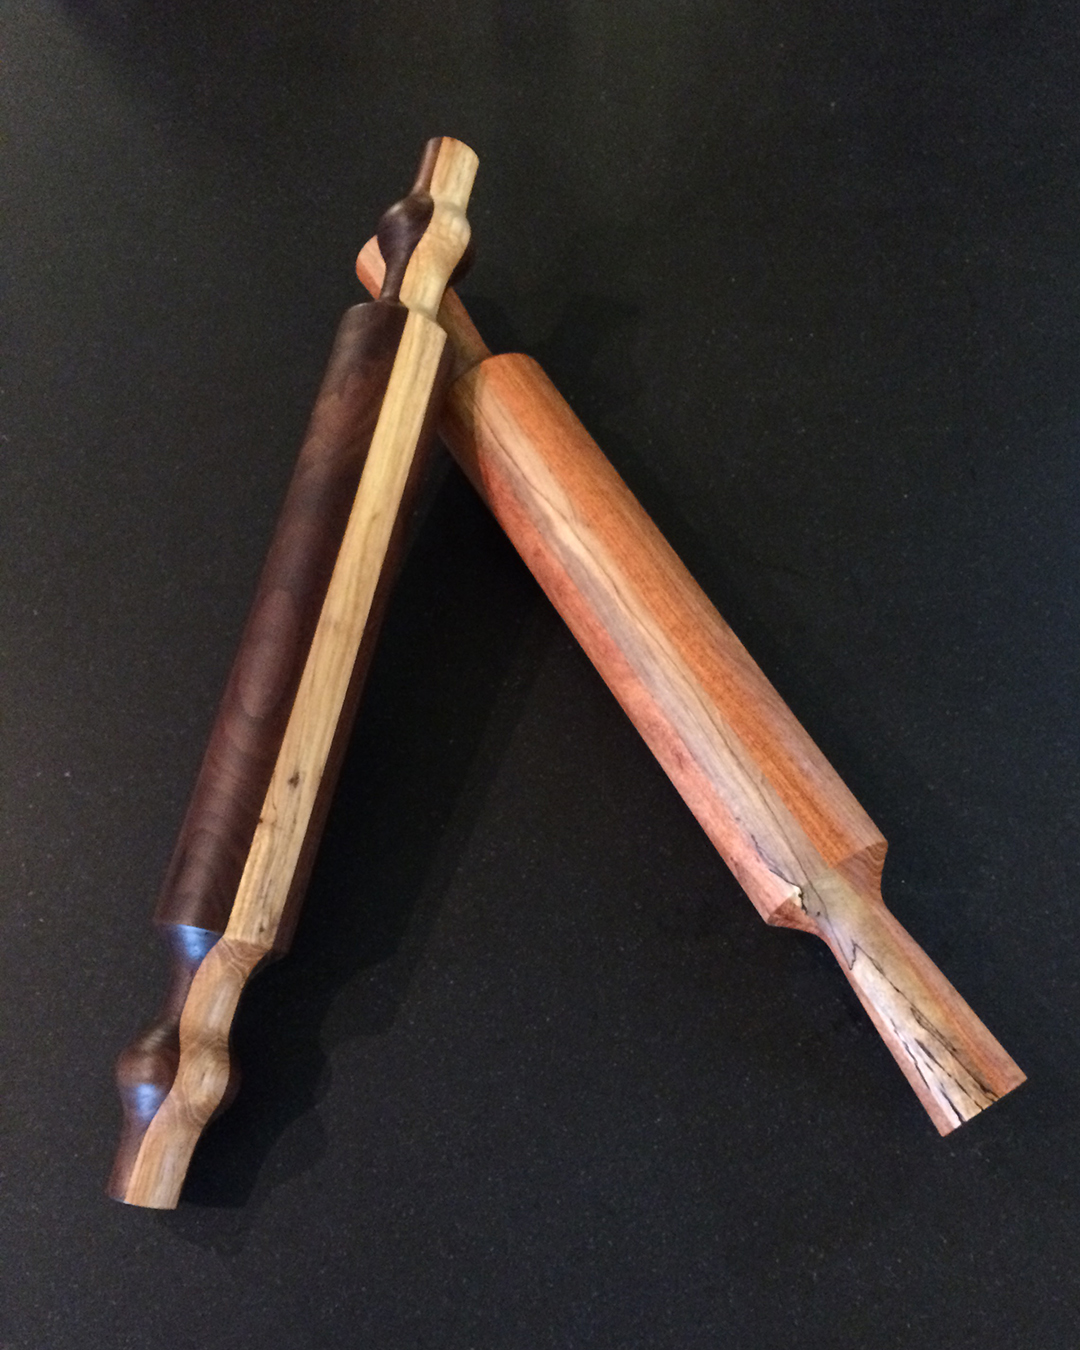 Walnut and Pecan and Mesquite and Pecan laminated wood rolling pins